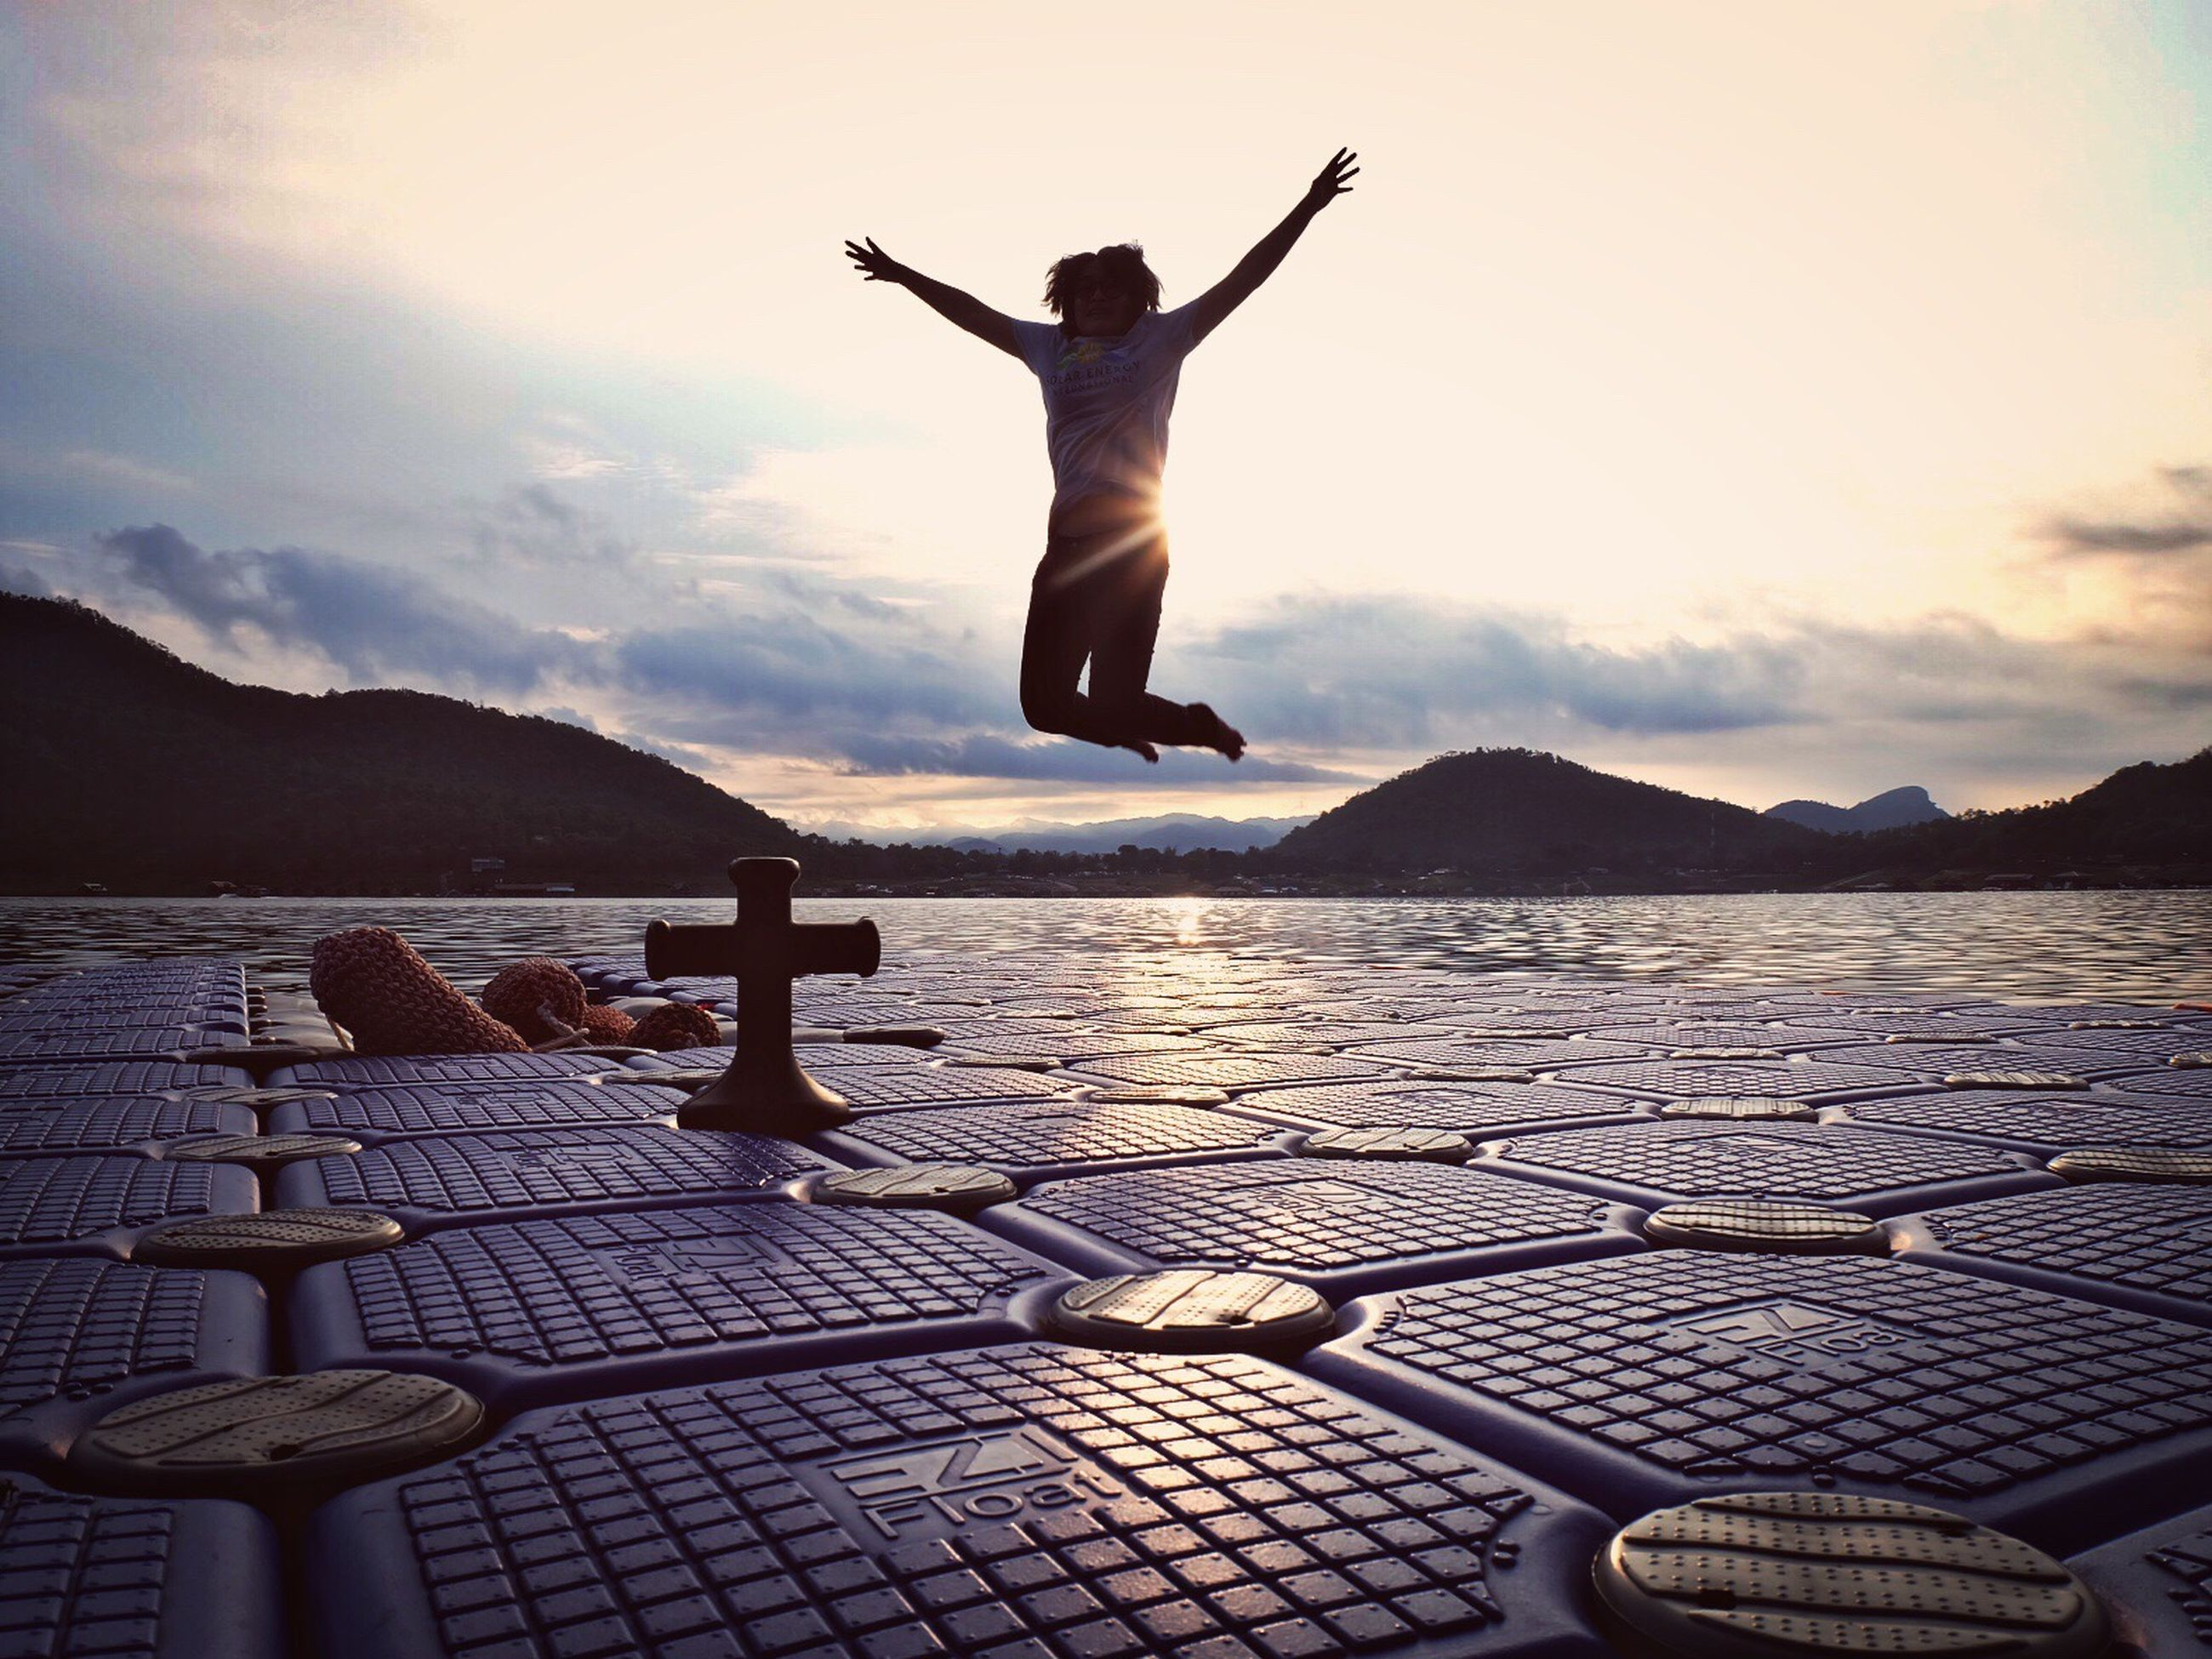 full length, lifestyles, jumping, mid-air, leisure activity, arms outstretched, sky, arms raised, enjoyment, freedom, balance, fun, cloud - sky, casual clothing, vacations, cloud, mountain, skill, outdoors, day, nature, tranquil scene